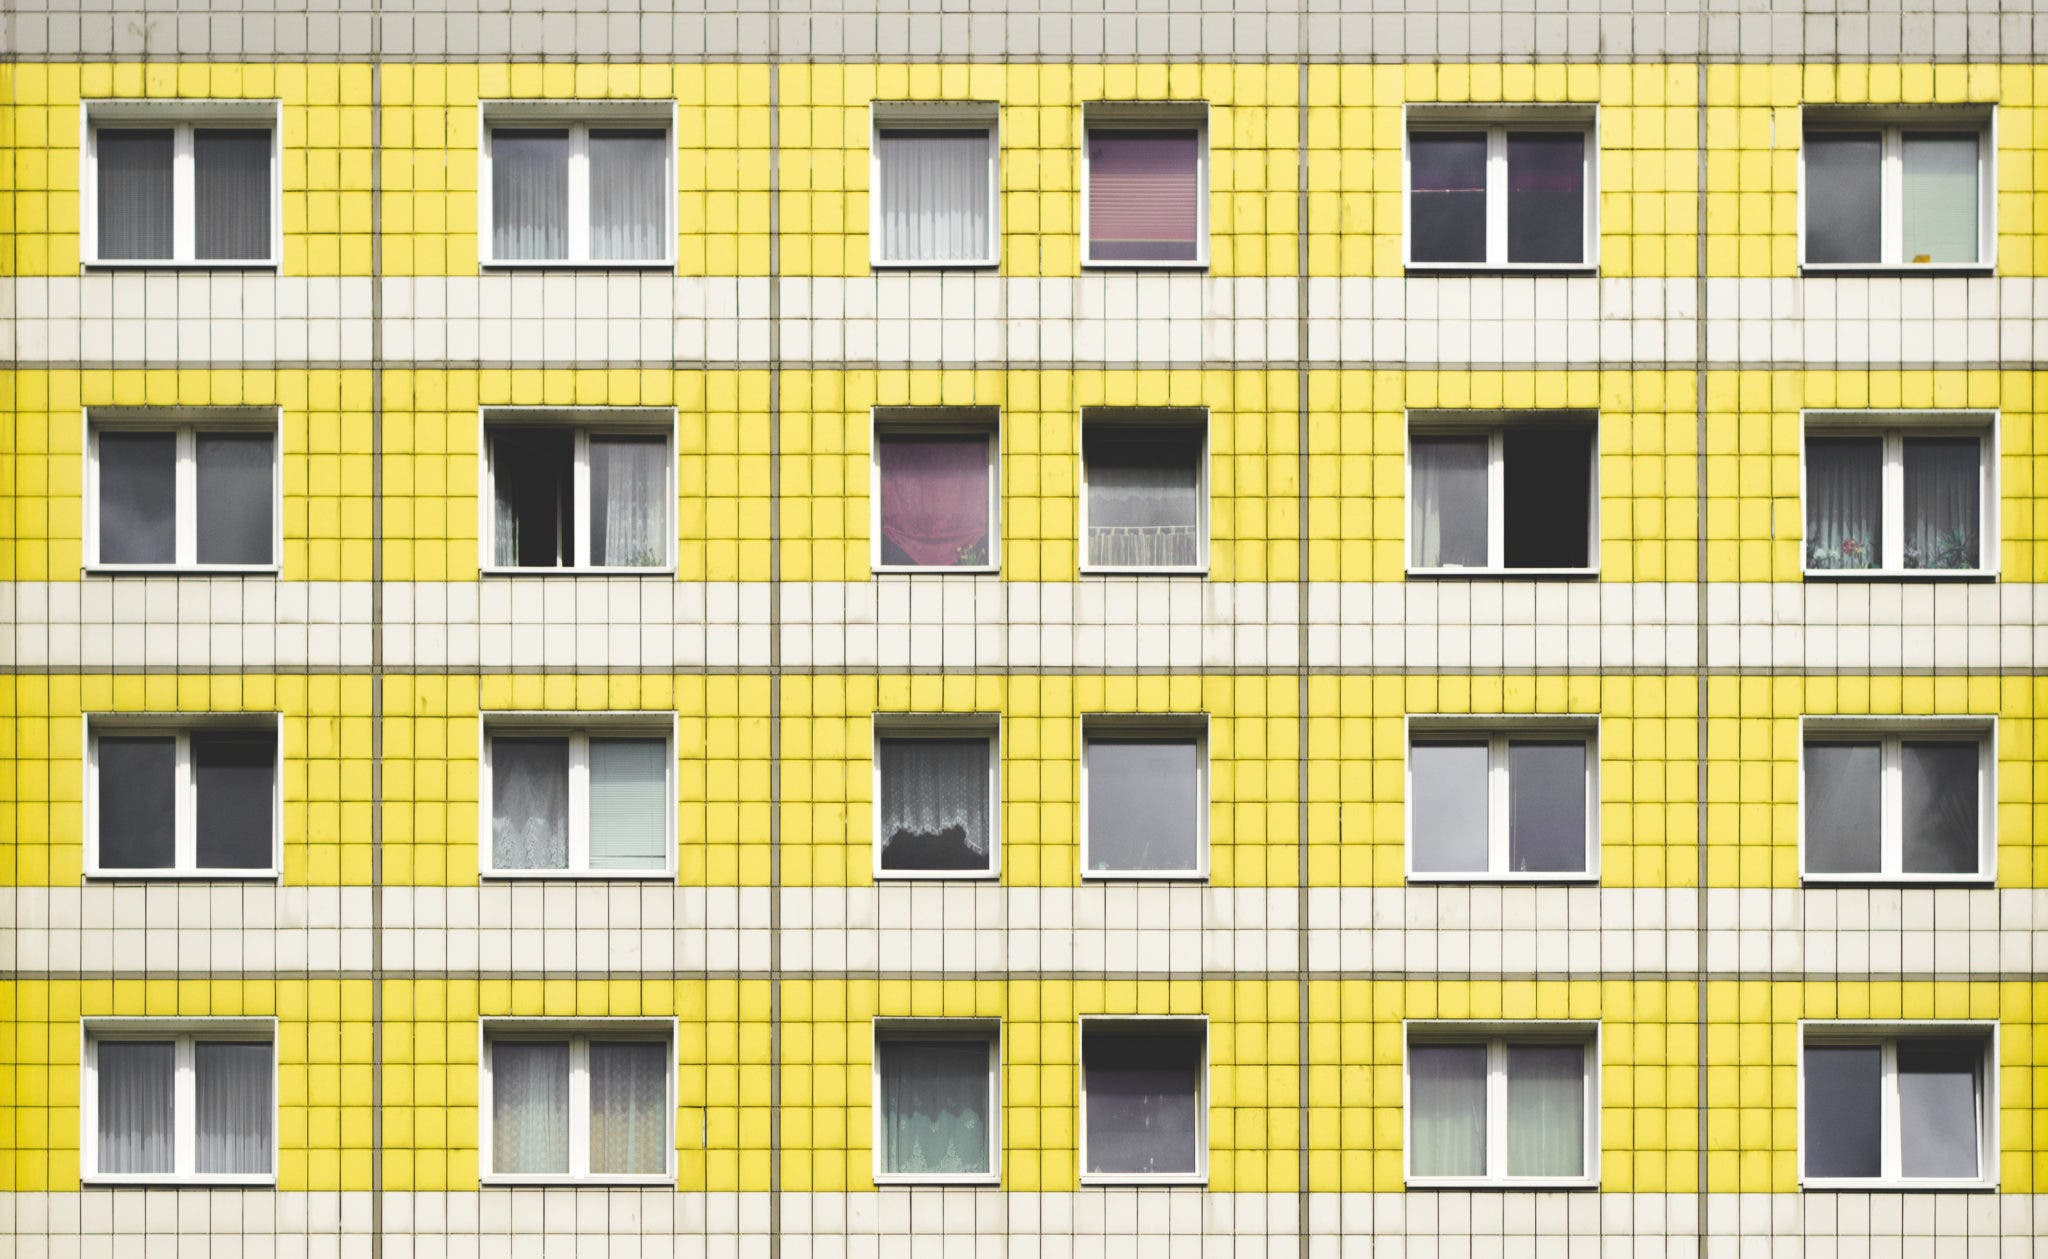 Thor Vermijlen: Photographic Serenity in Urban Geometry